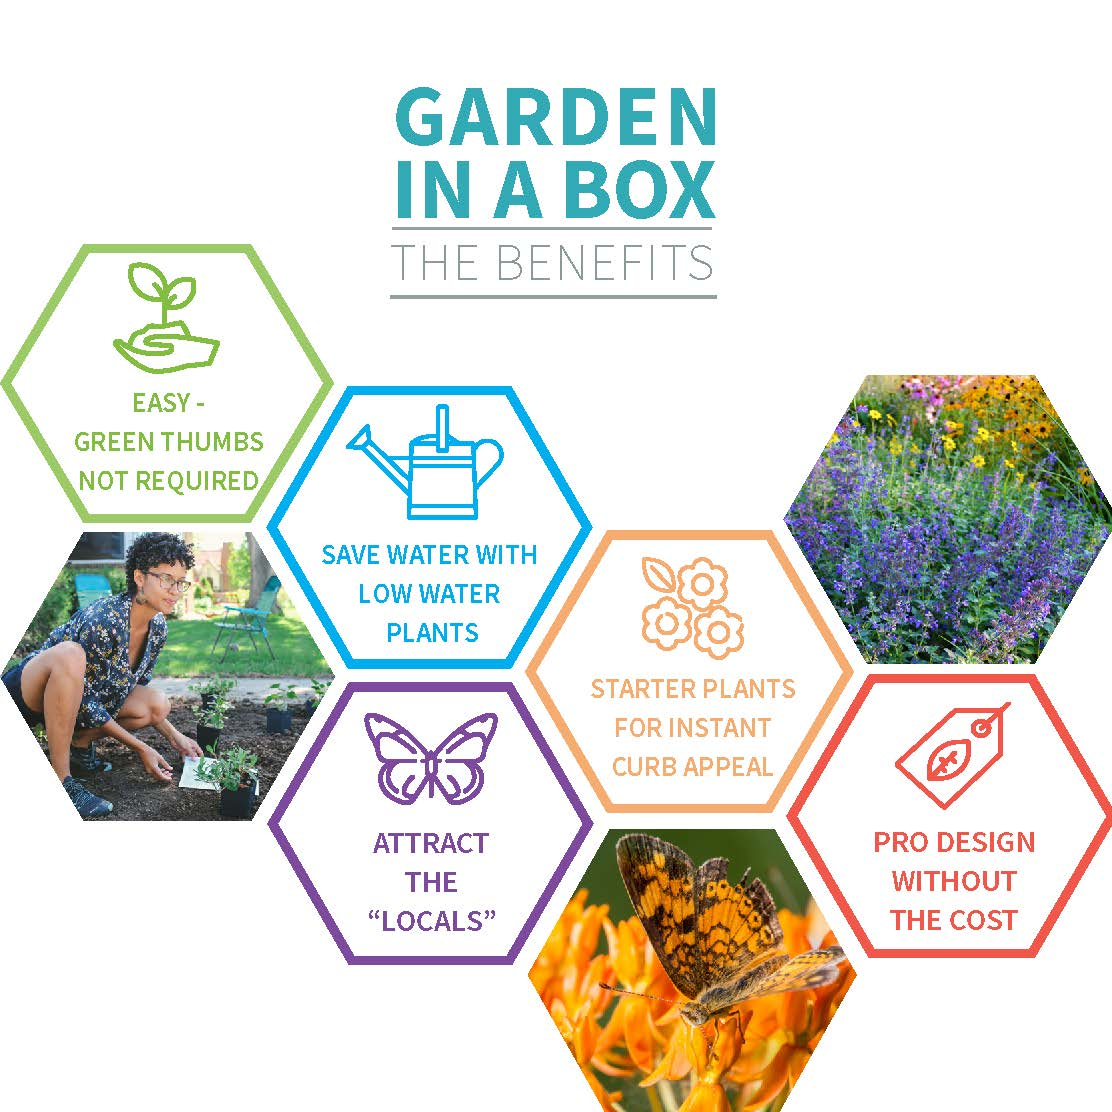 Garden In A Box Benefits Infographic